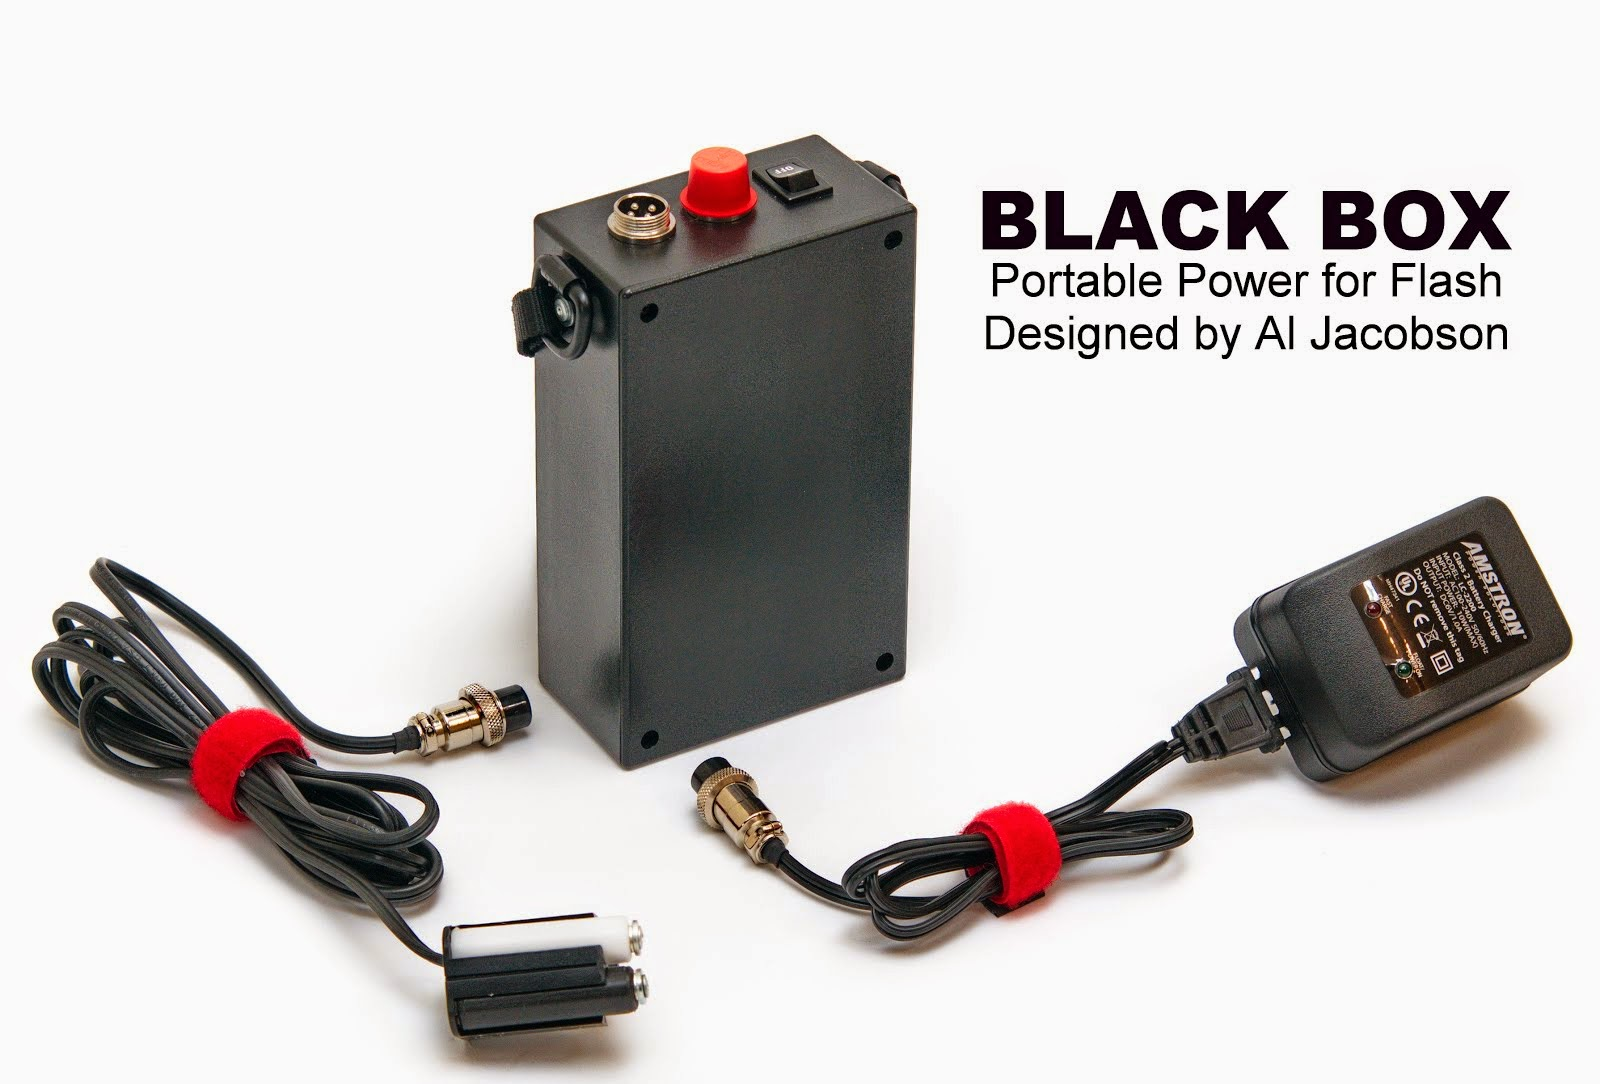 BLACK BOX PORTABLE POWER